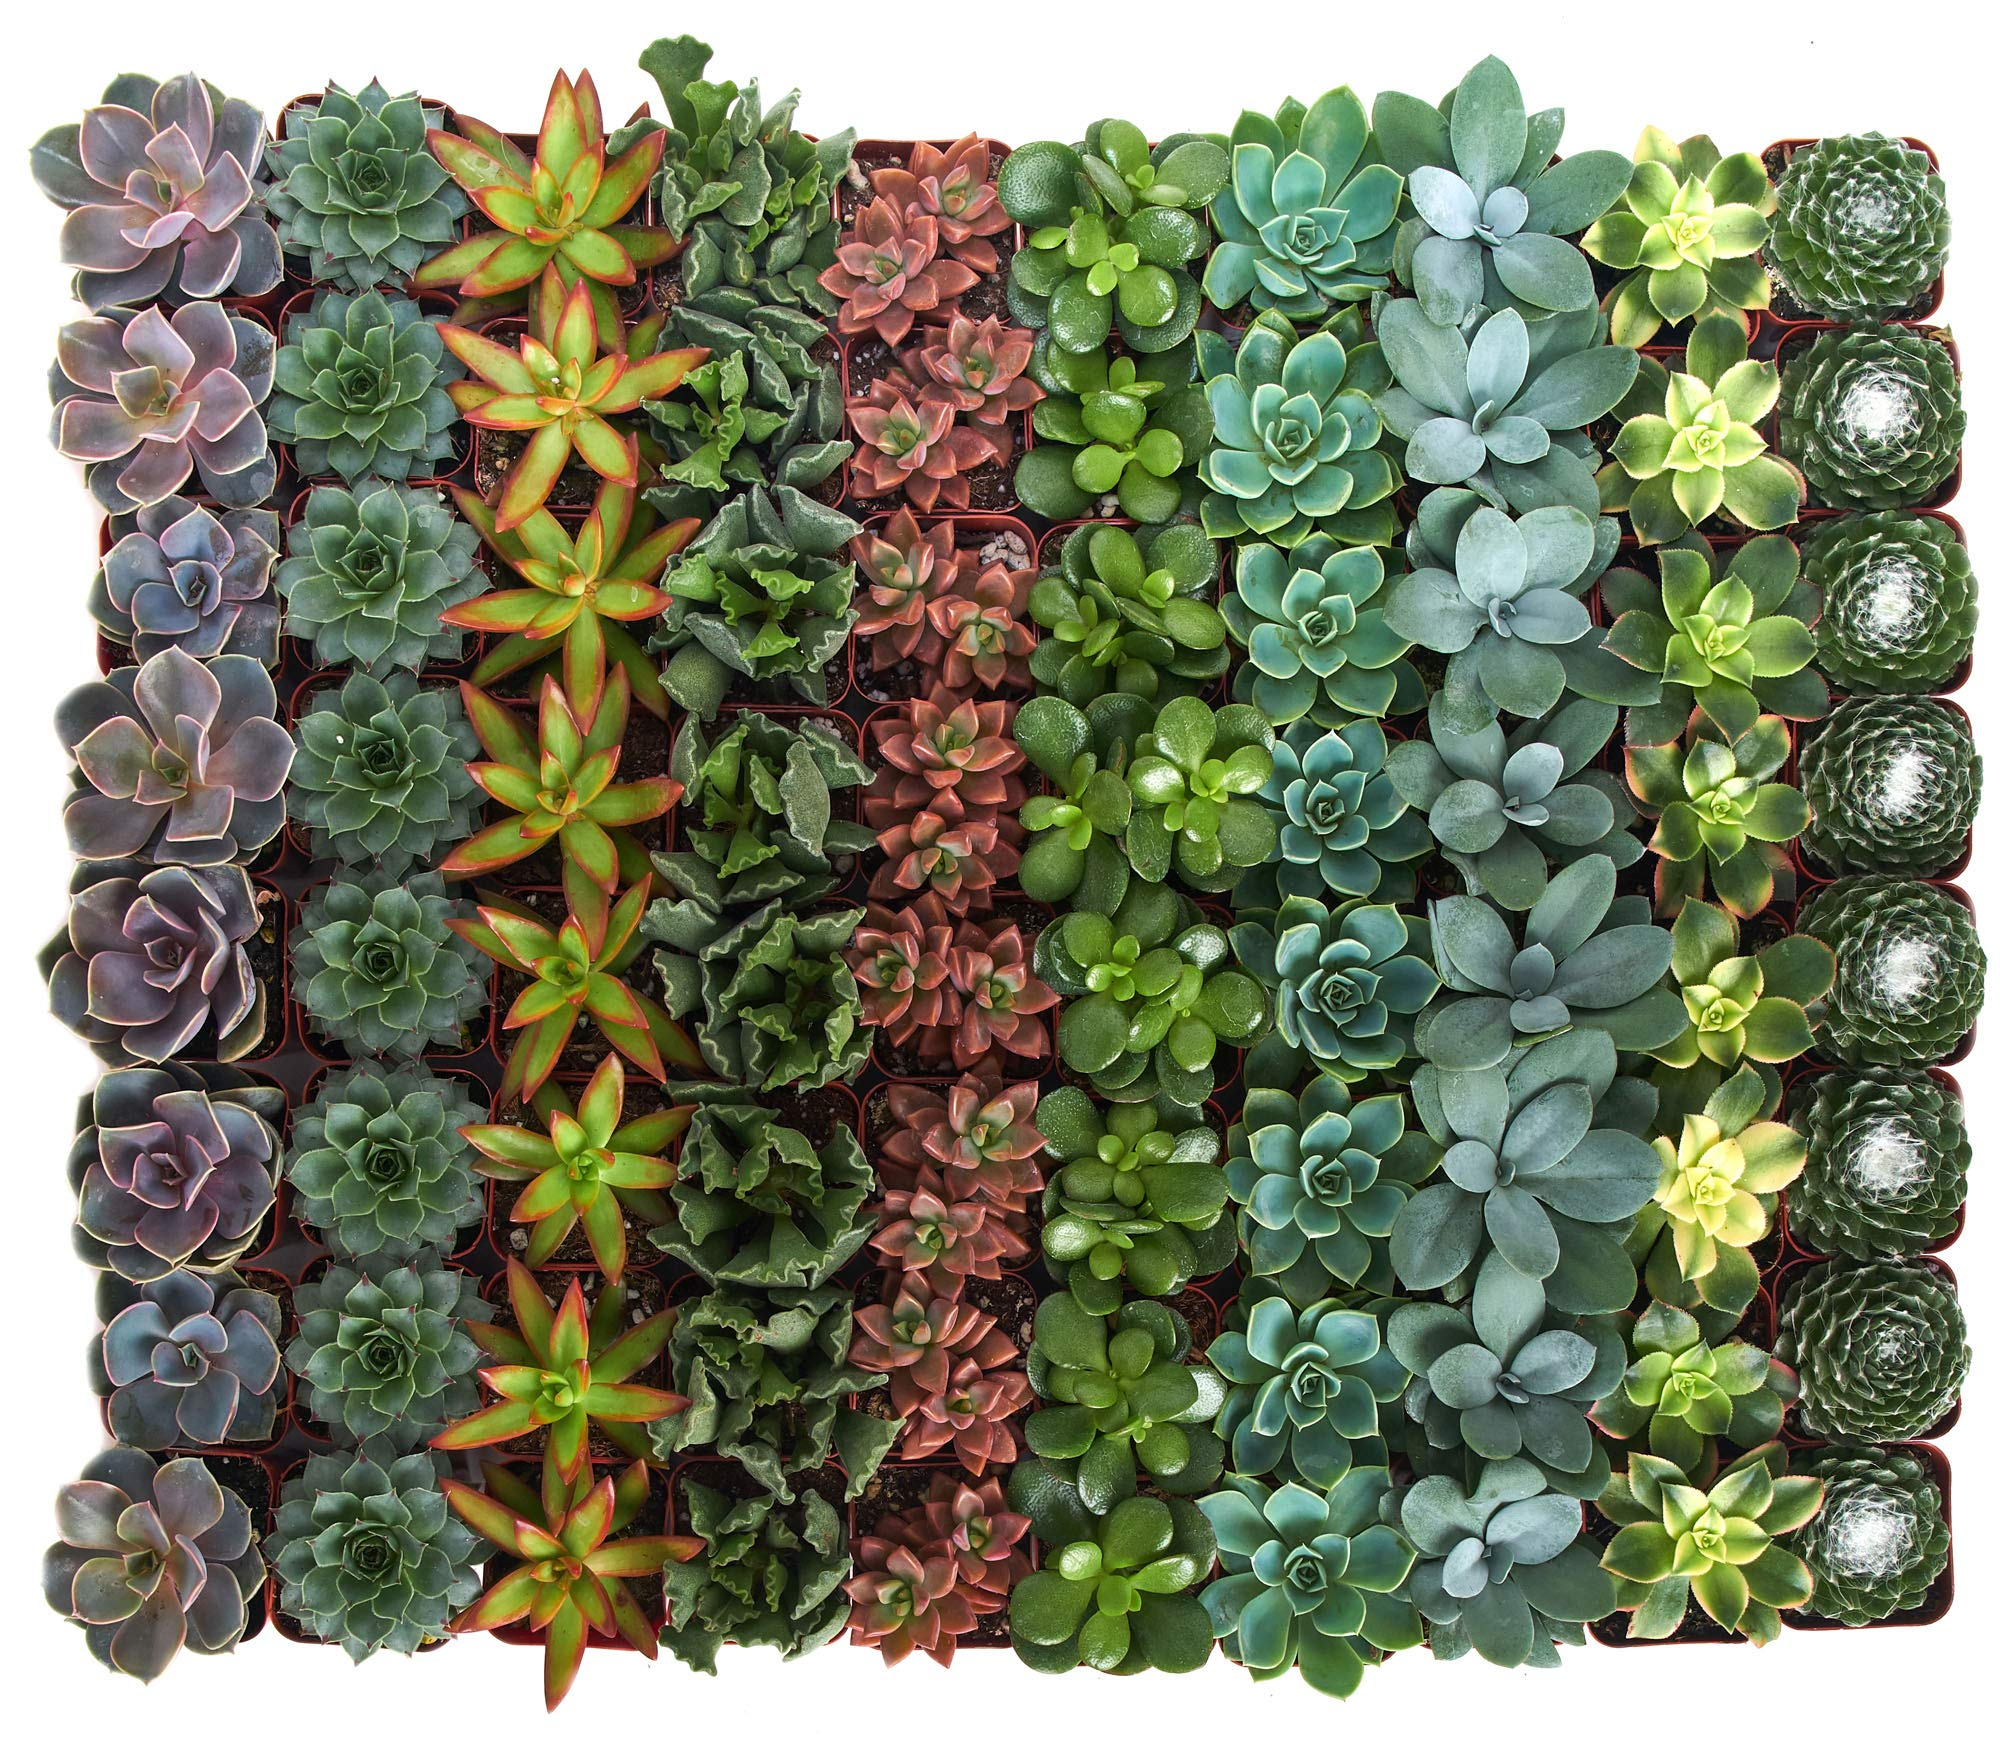 Shop Succulents | Assorted Collection of Live Succulent Plants, Hand Selected Variety Pack of Mini Succulents | Collection of 40 by Shop Succulents